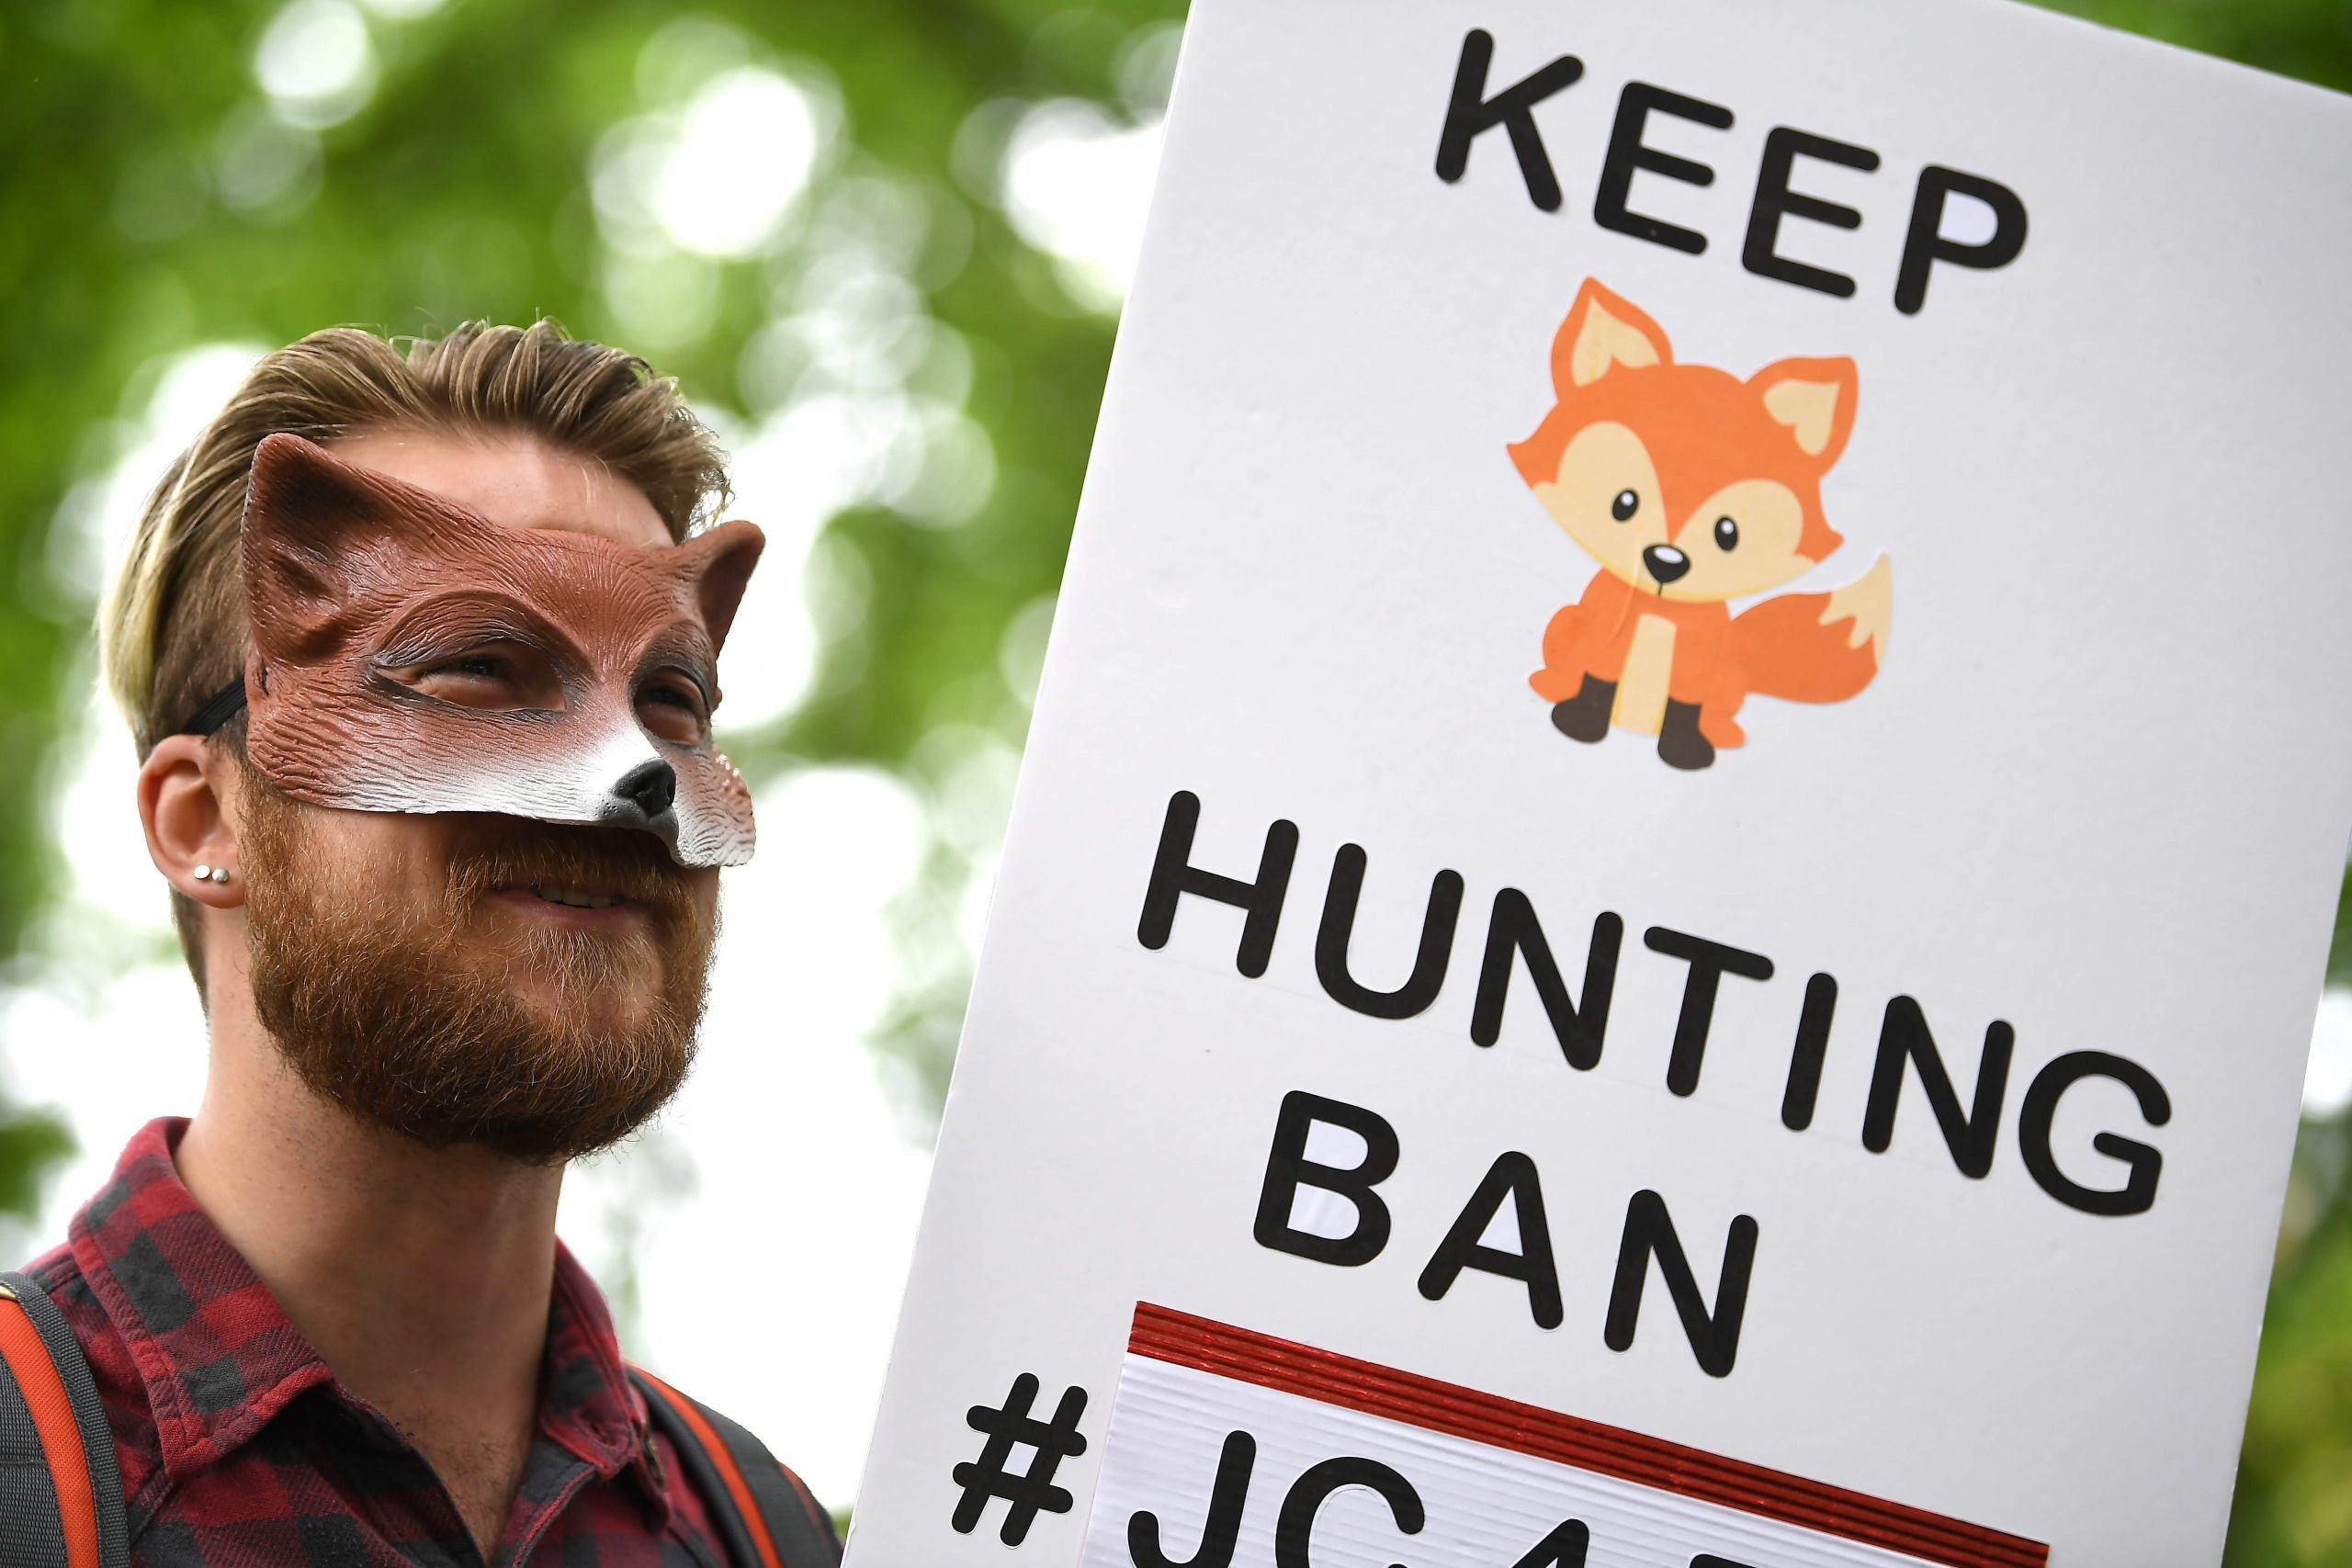 Fox hunting is deeply unpopular - so why does Theresa May care so much about bringing it back?